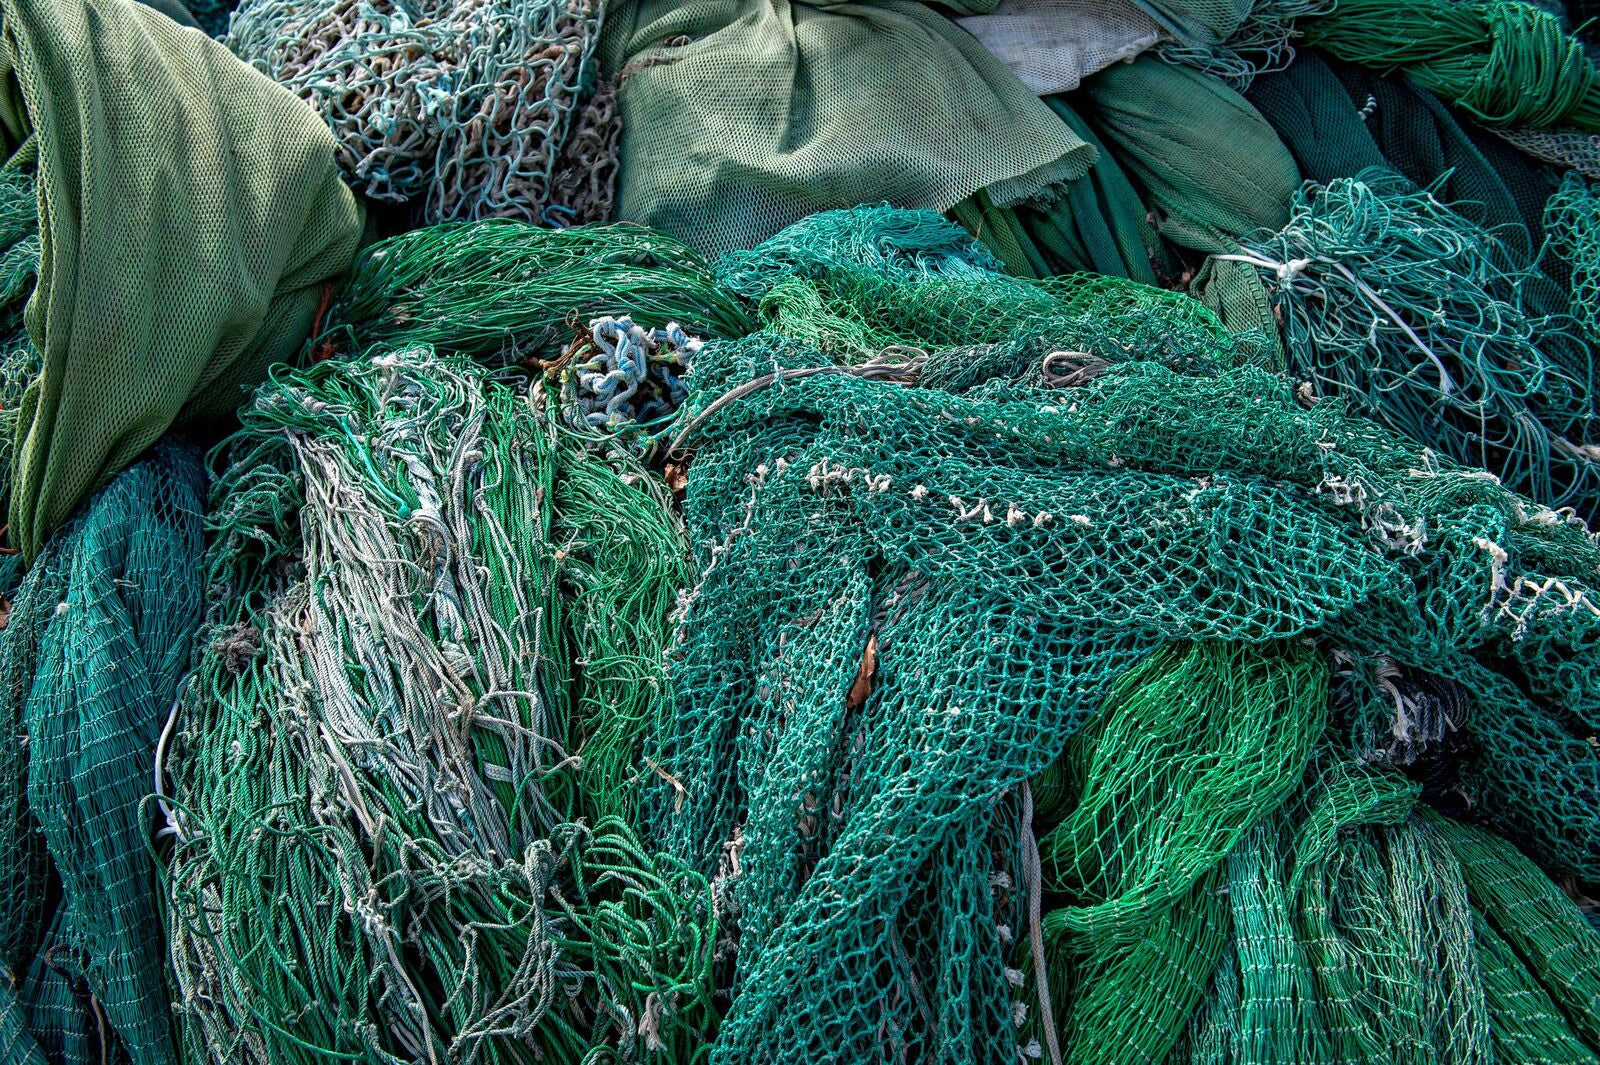 Ocean Pollution: What is Ghost Fishing & Why Should We Care?